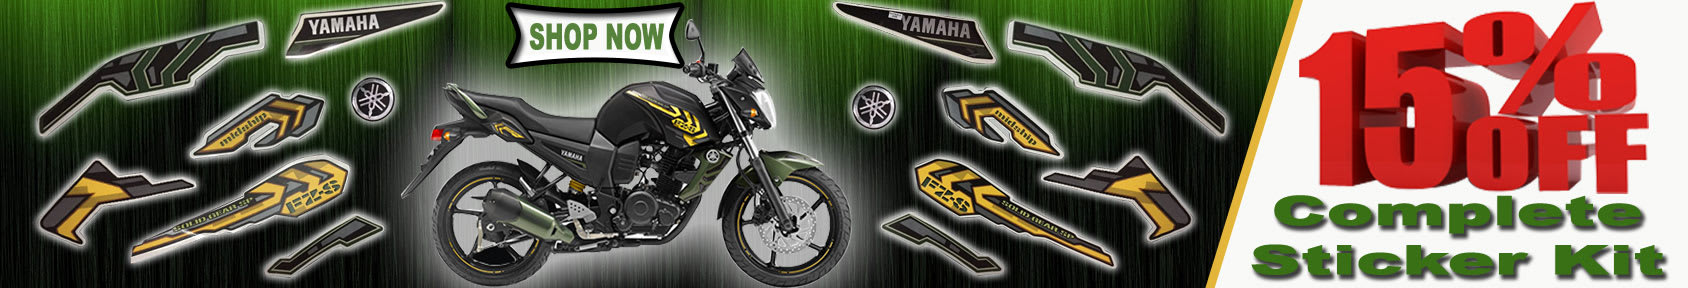 Special offers on Genuine Motorcycle Spare Parts And  		   Accessories - Buy Motorcycle and Scooter Sticker Kits of Best Quality